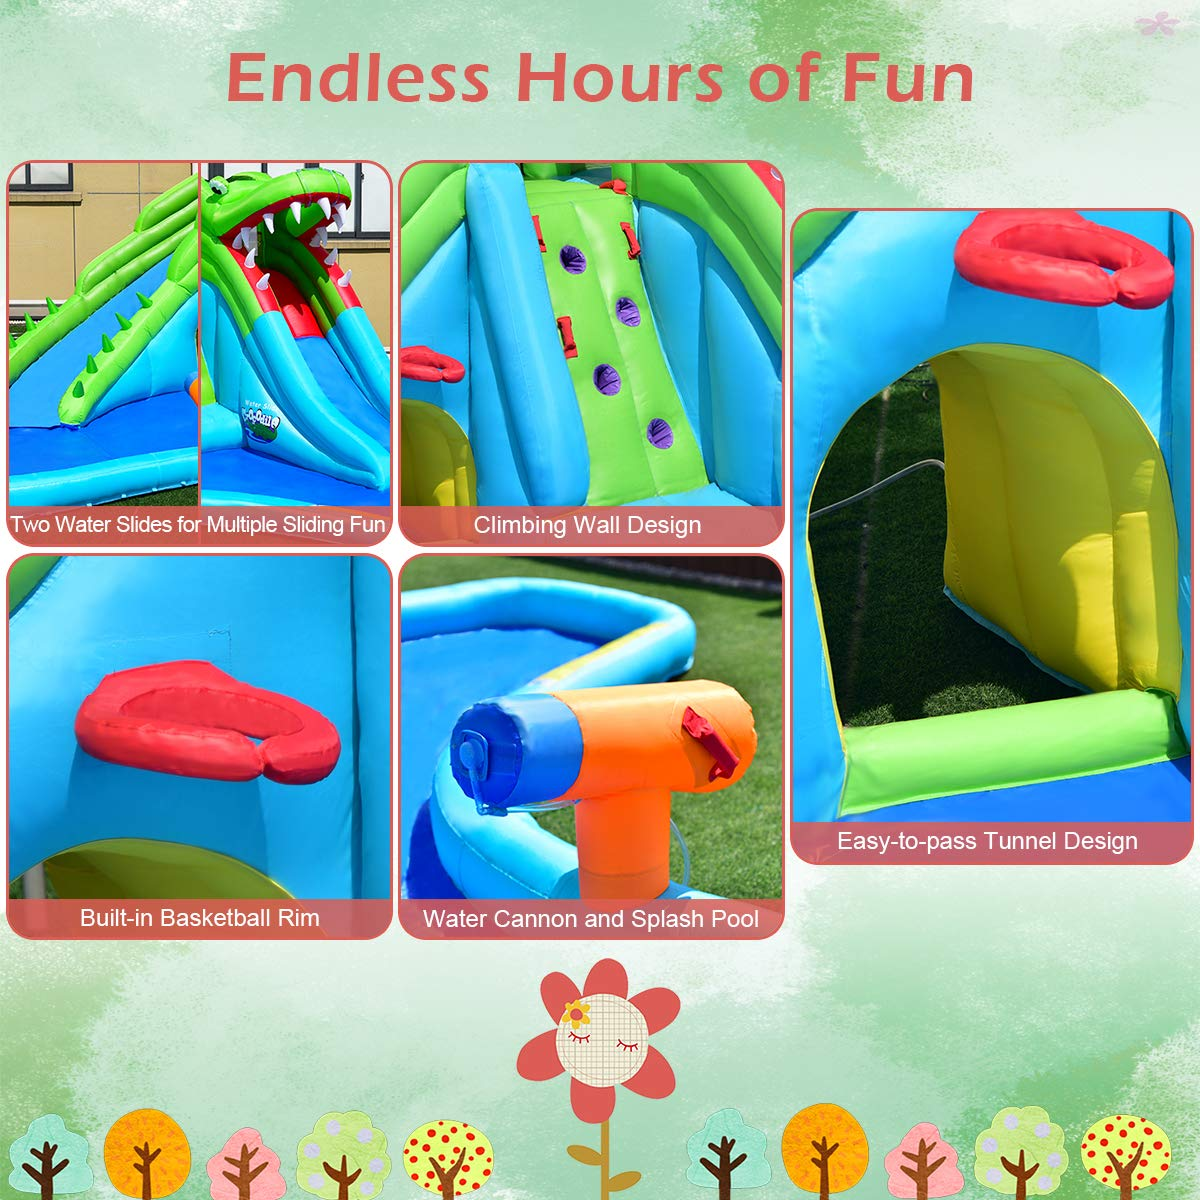 Costzon Inflatable Pool Bouncer, Crocodile Themed Bounce House w/Two Water Slides, Climbing Wall, Basketball Rim, Tunnel, Kids Water Park, Including Carry Bag, Hose, Repair Kit, 780W Air Blower by Costzon (Image #4)